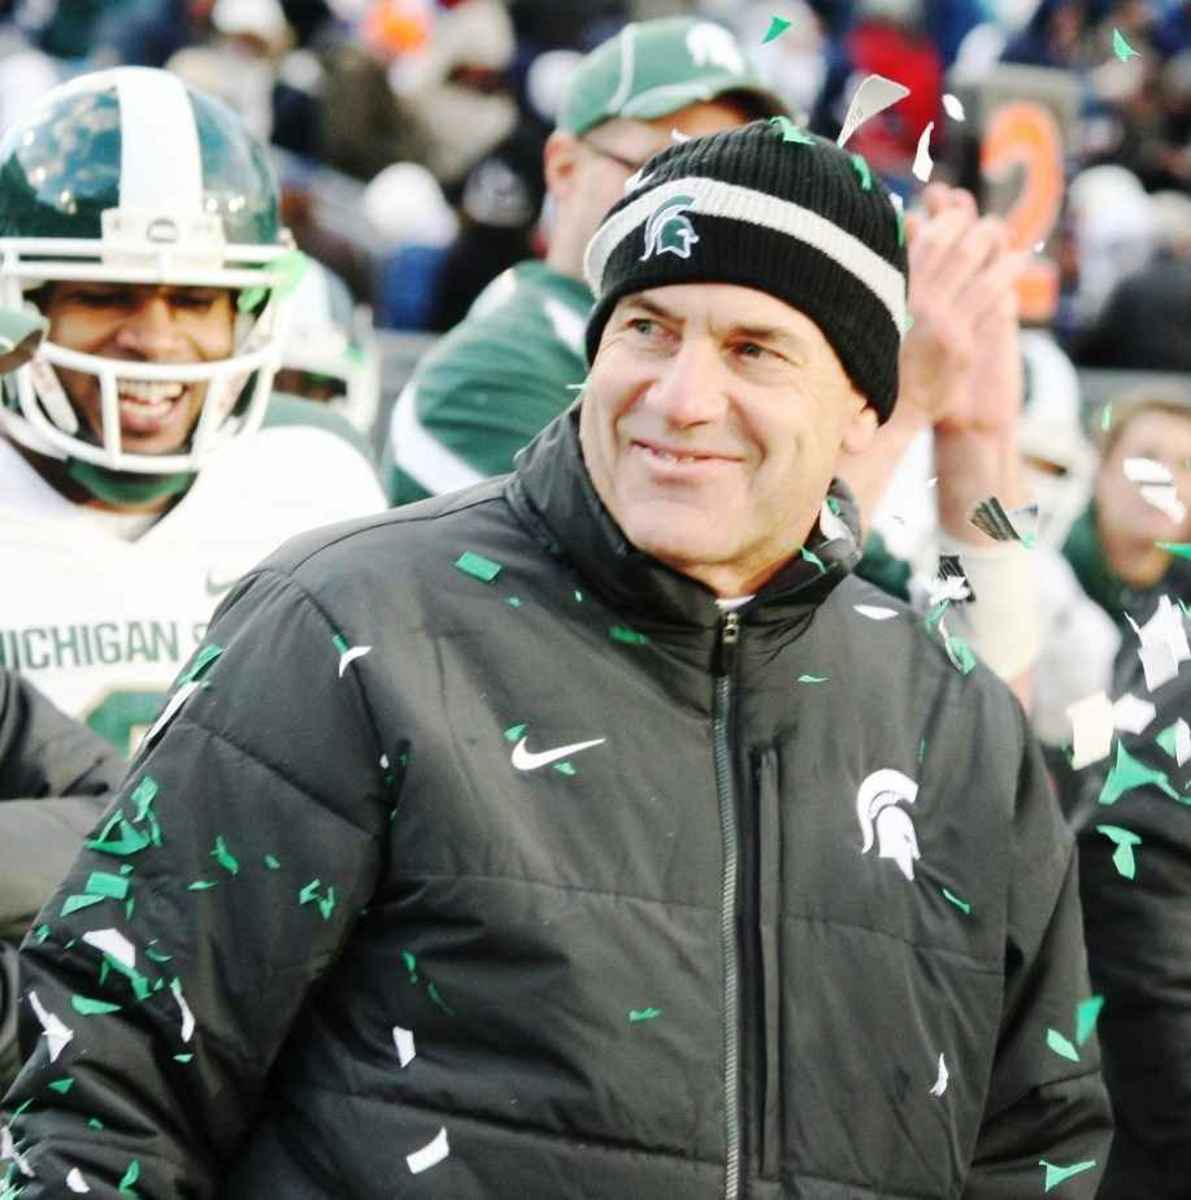 After winning his first (but not his last Big Ten Title) as a head coach Dantonio was all smiles.  Photo courtesy of Bill Marklevits.